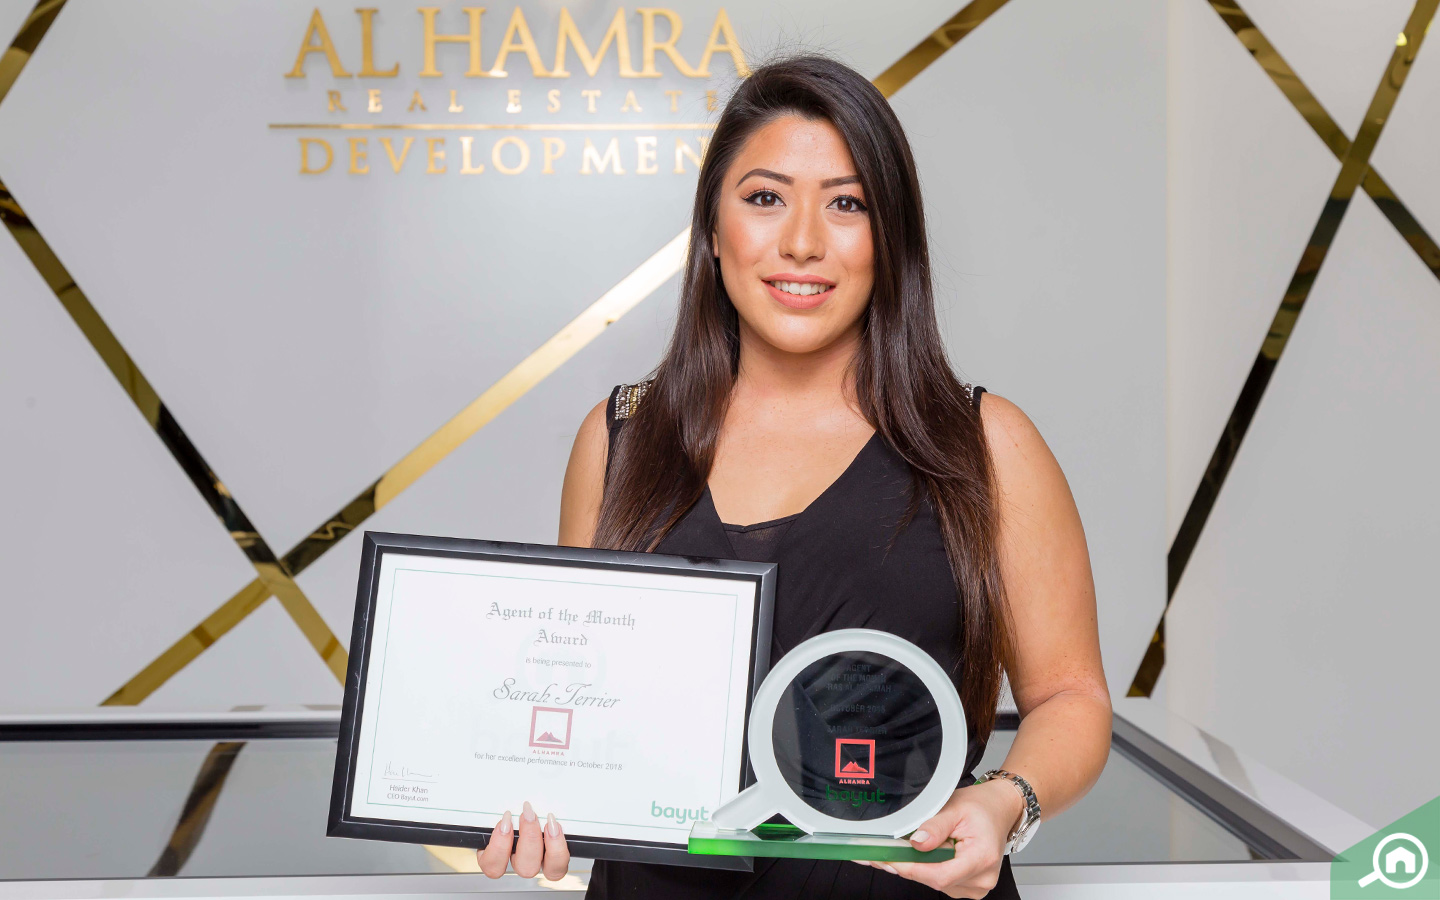 Agent of the Month from Al Hamra Real Estate